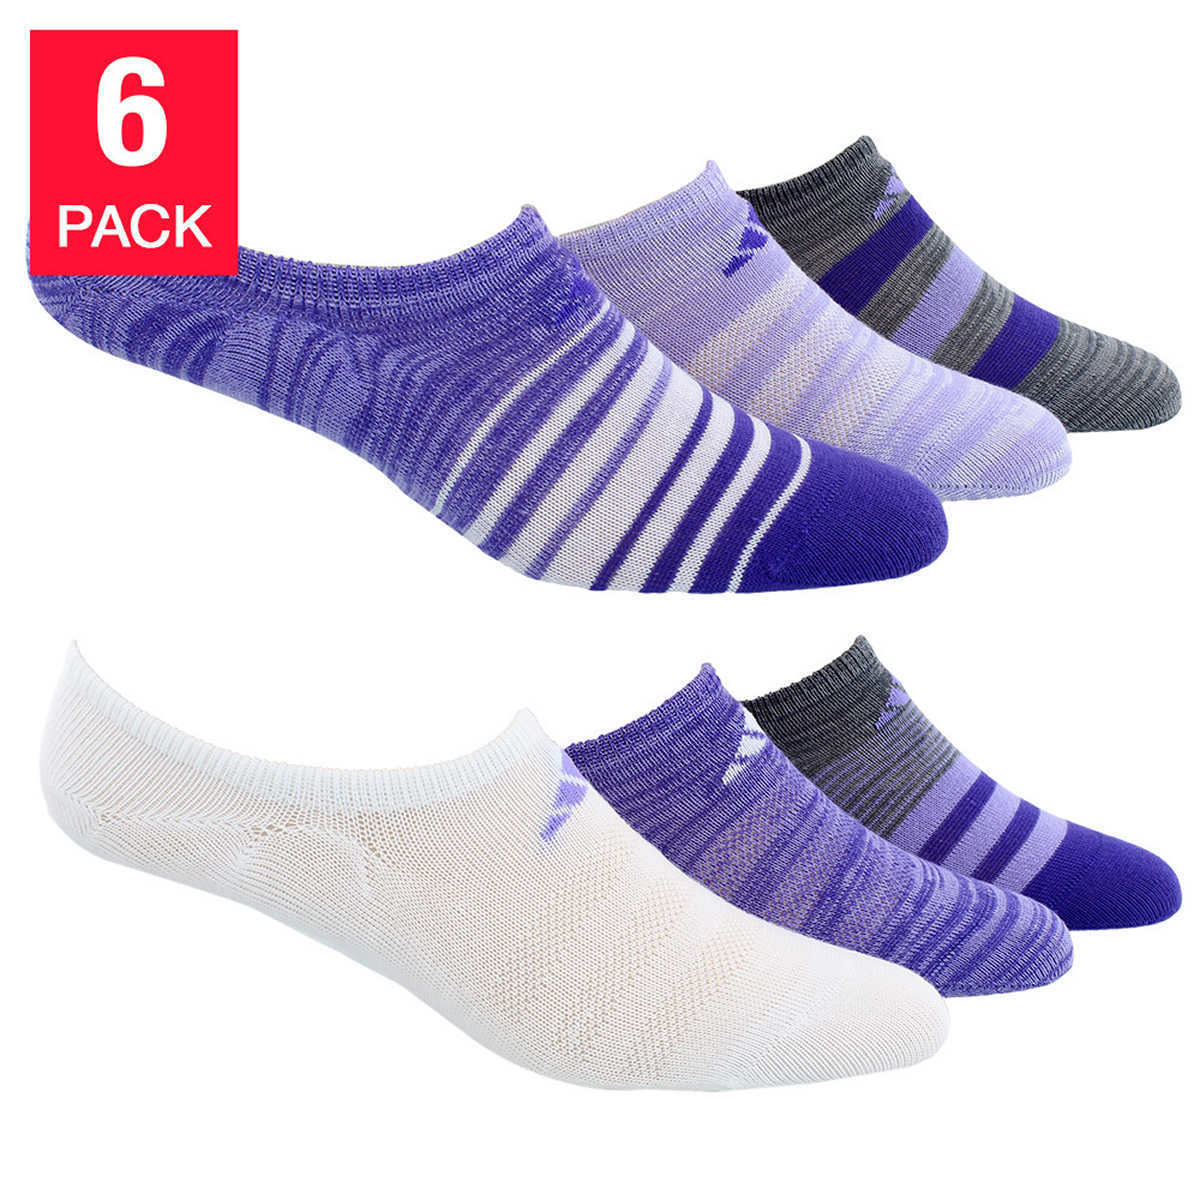 Adidas Women's Superlite no show 6 Pair Climalite Socks Size 5-10